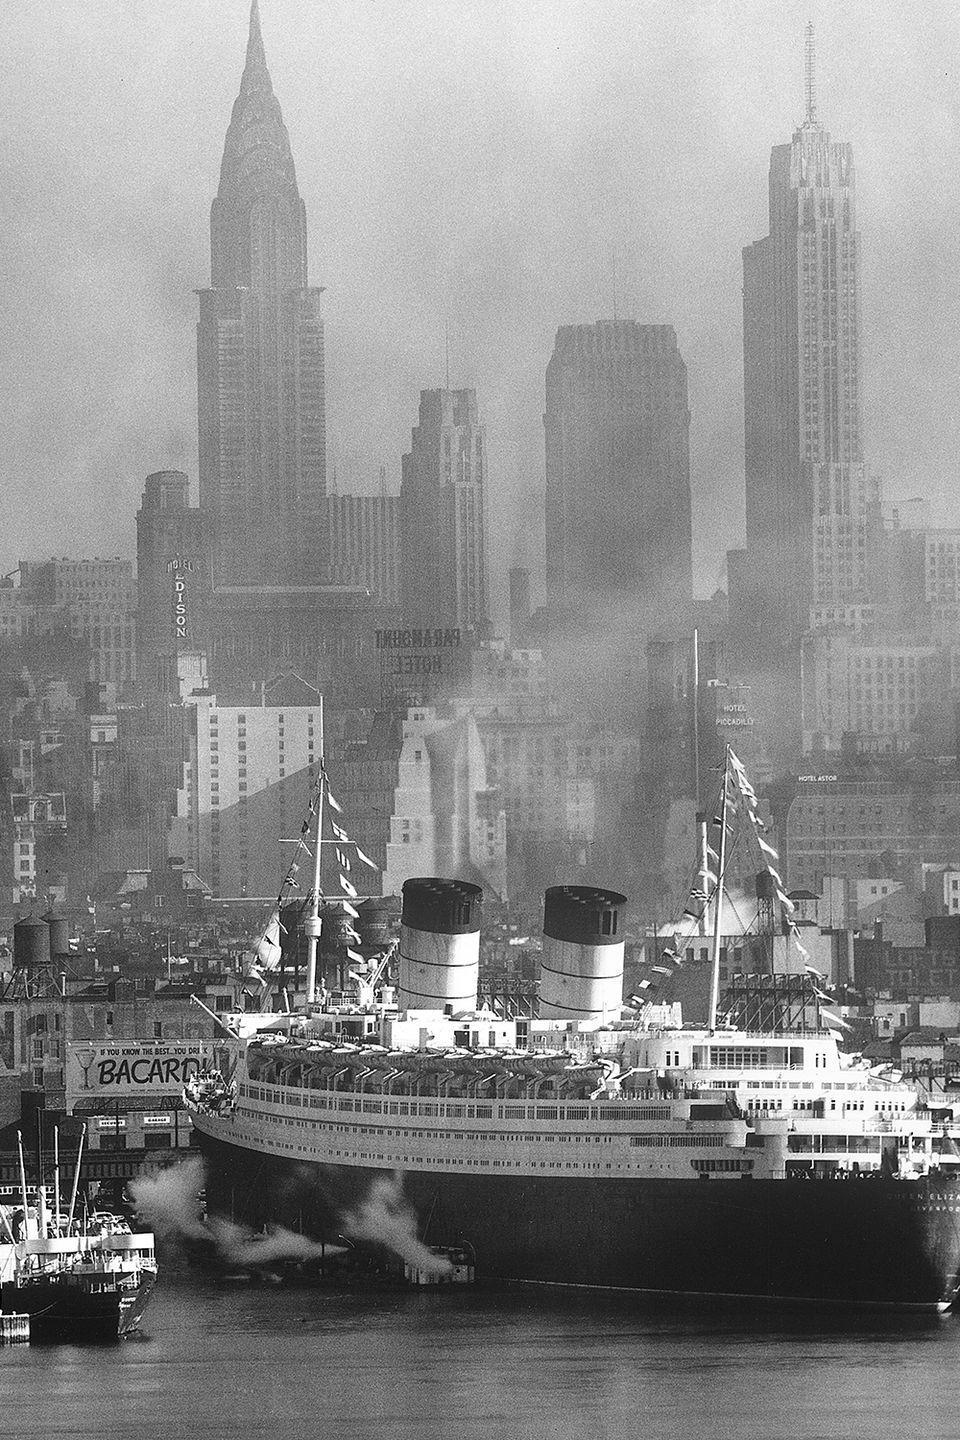 <p>View of the ocean liner, the Queen Elizabeth of the Cunard line, as it sails into port with the Chrysler Building, the Chanin Building, and 500 Fifth Avenue spotted in the background. </p>